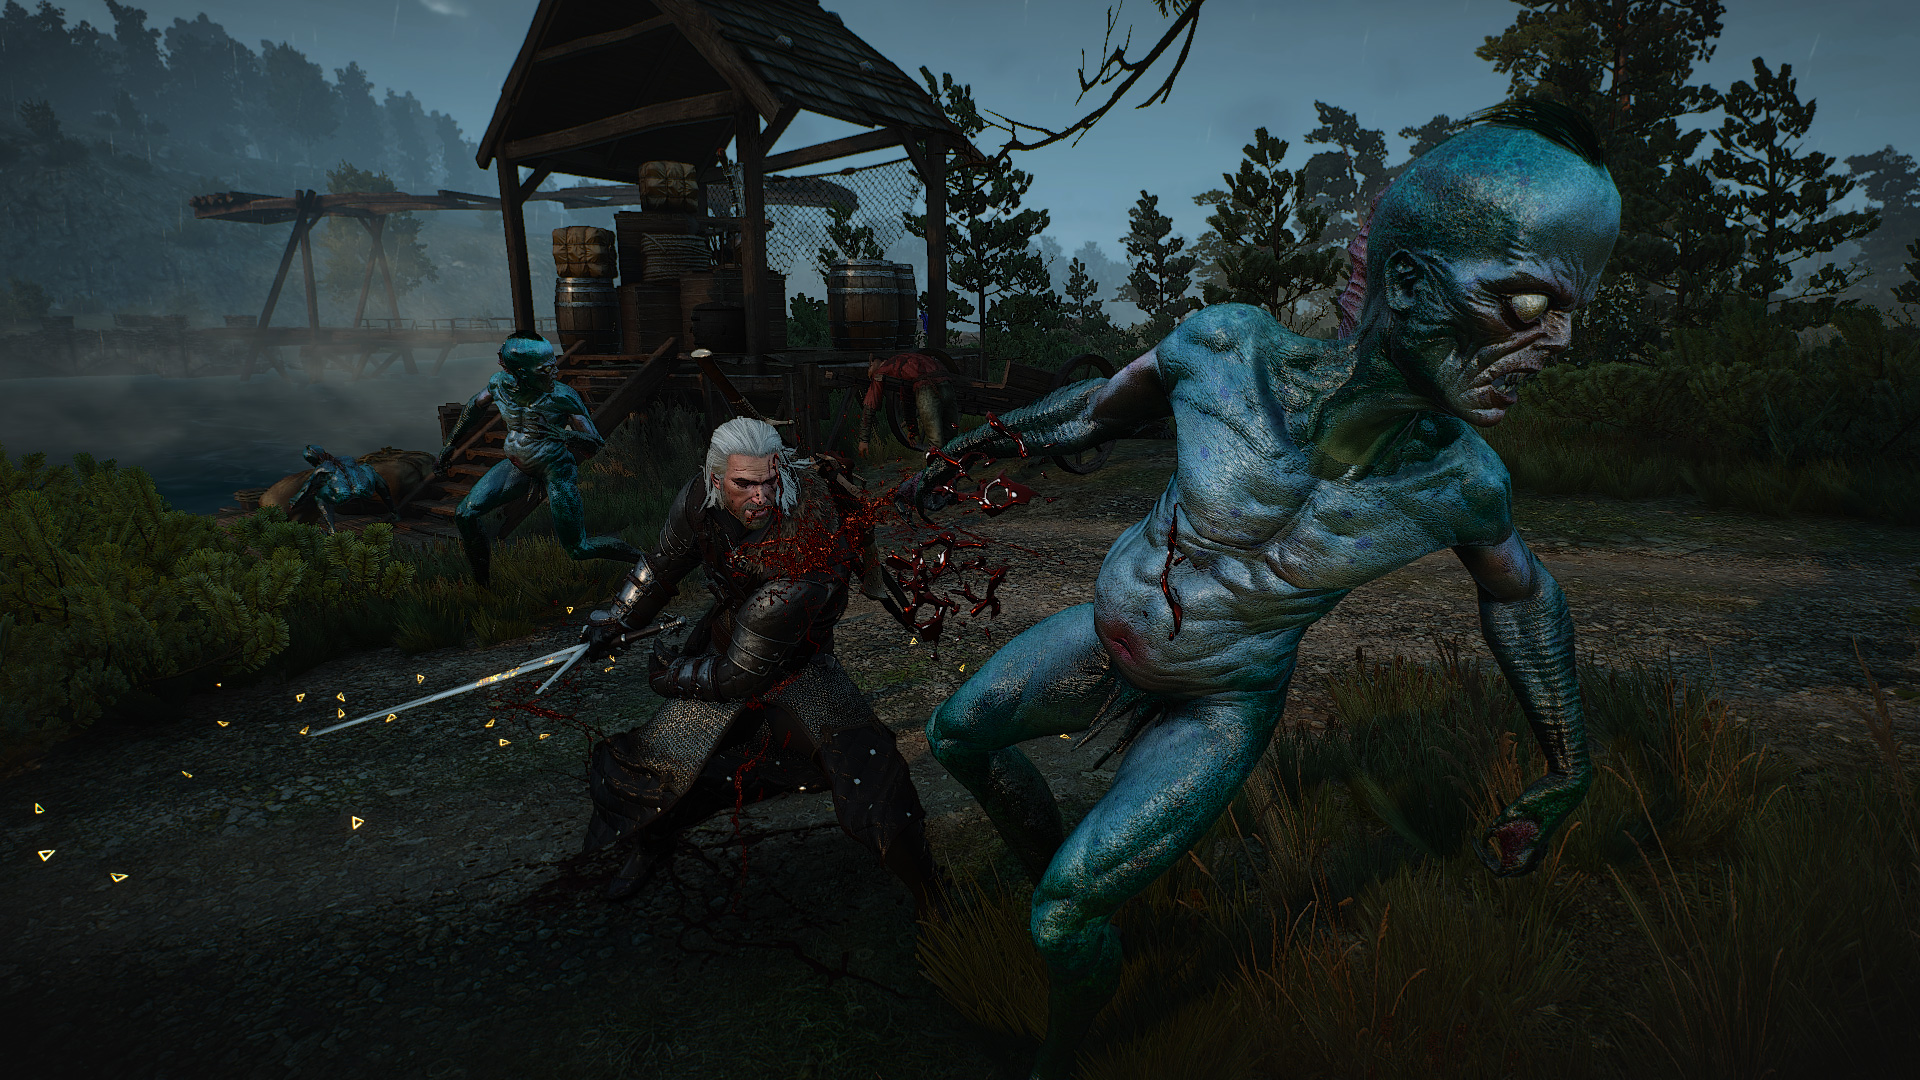 The Witcher 3: Ansel-2